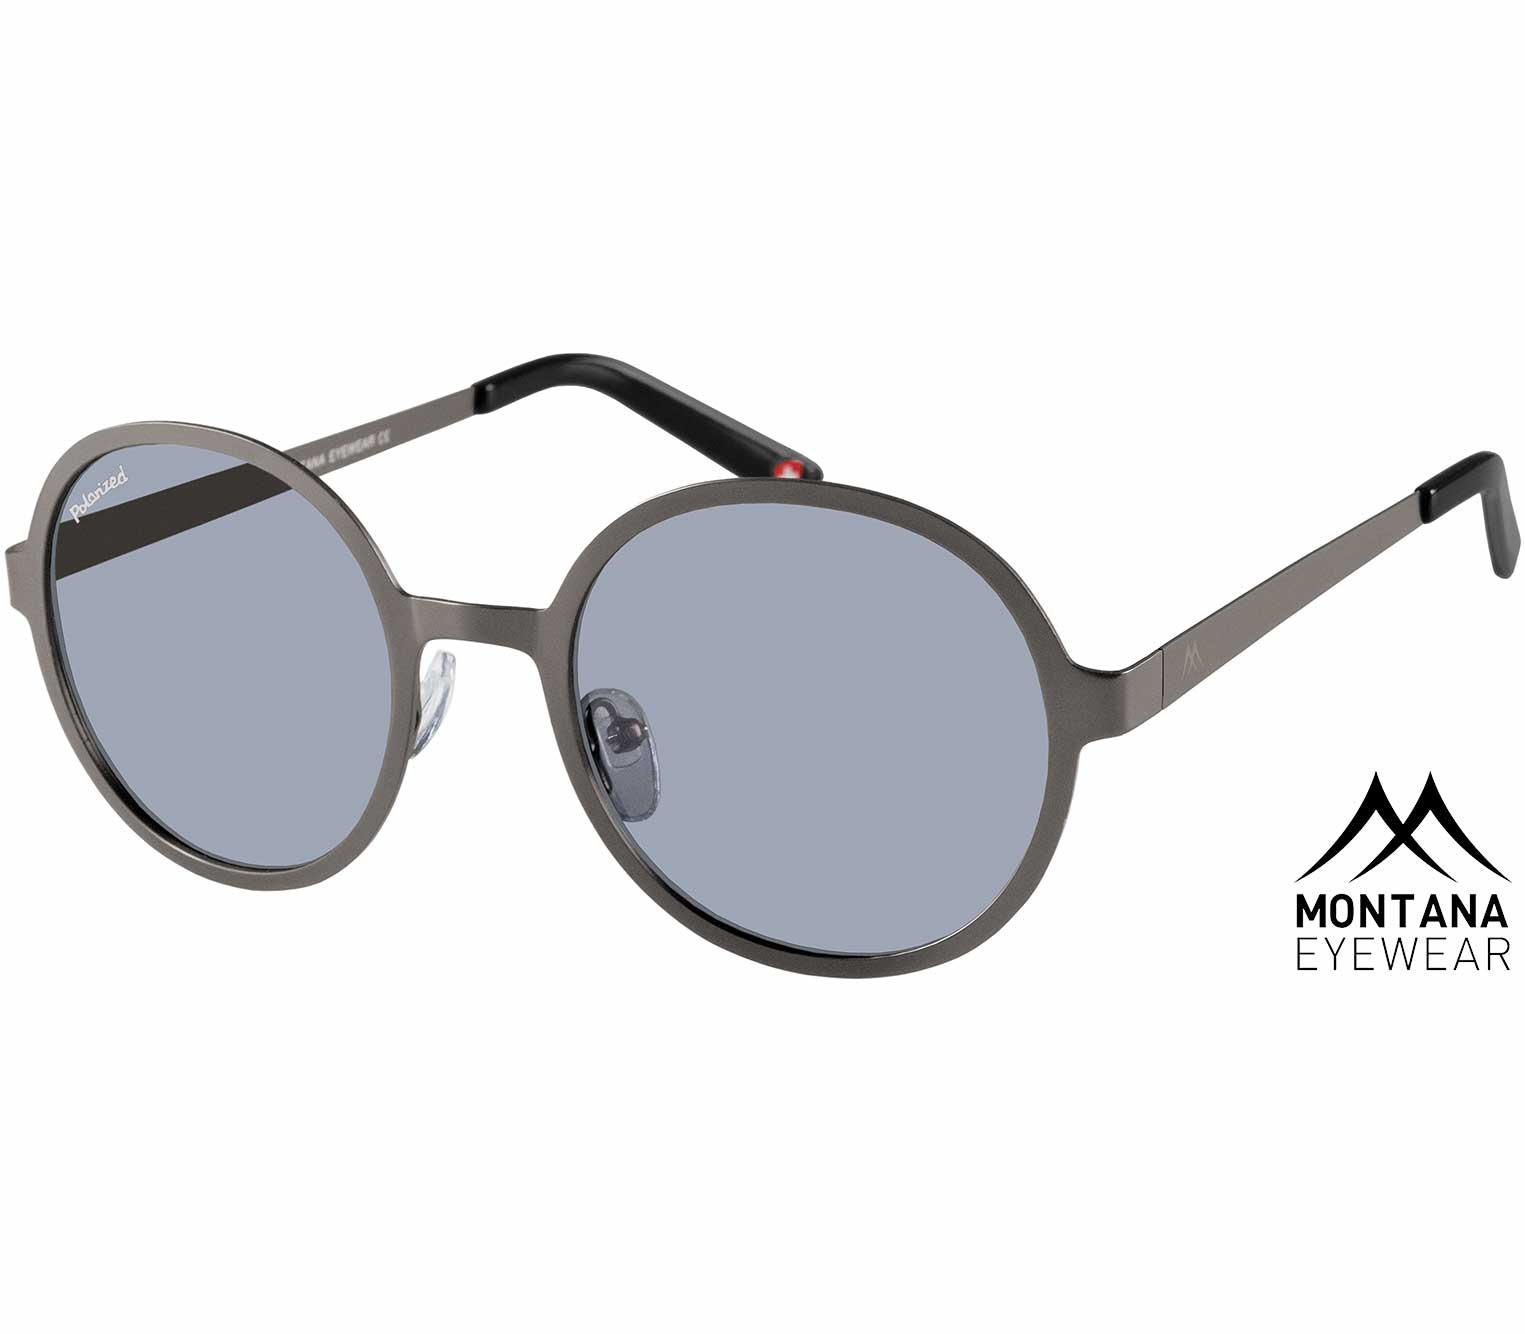 Pulsar (Gunmetal) Retro Sunglasses